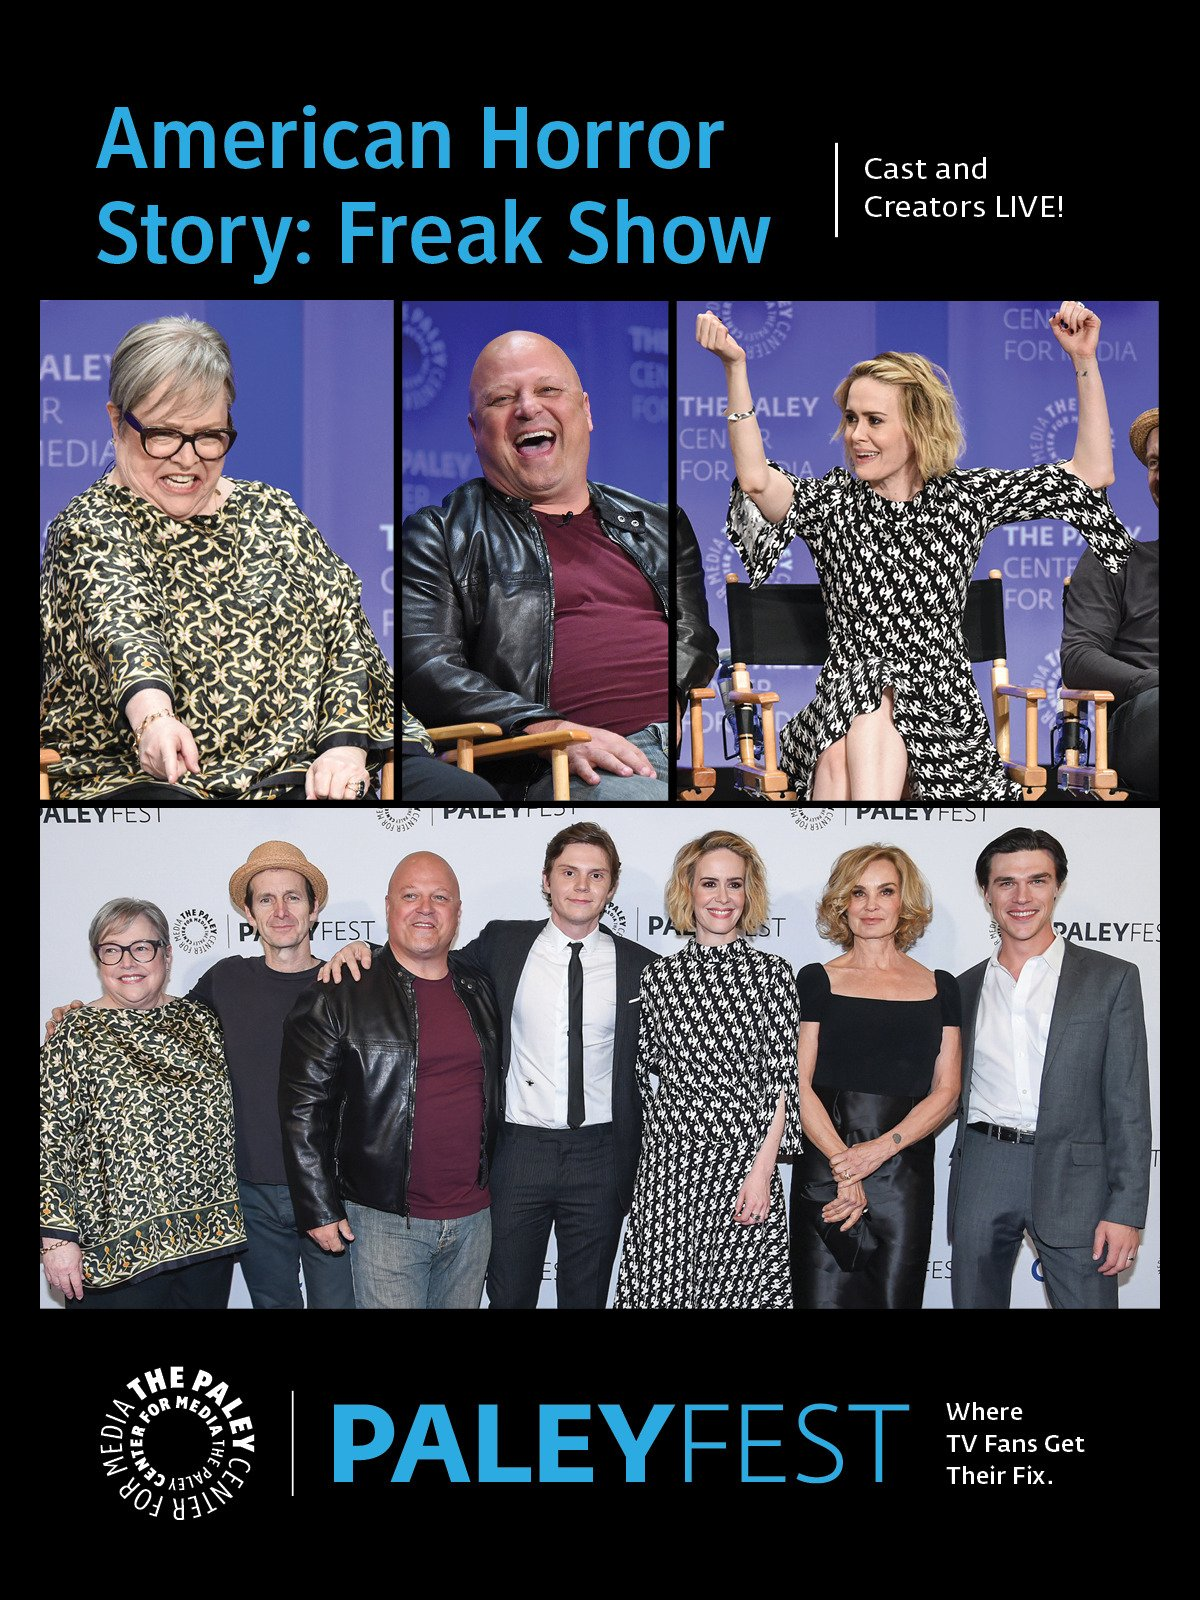 American Horror Story: Freak Show: Cast and Creators Live